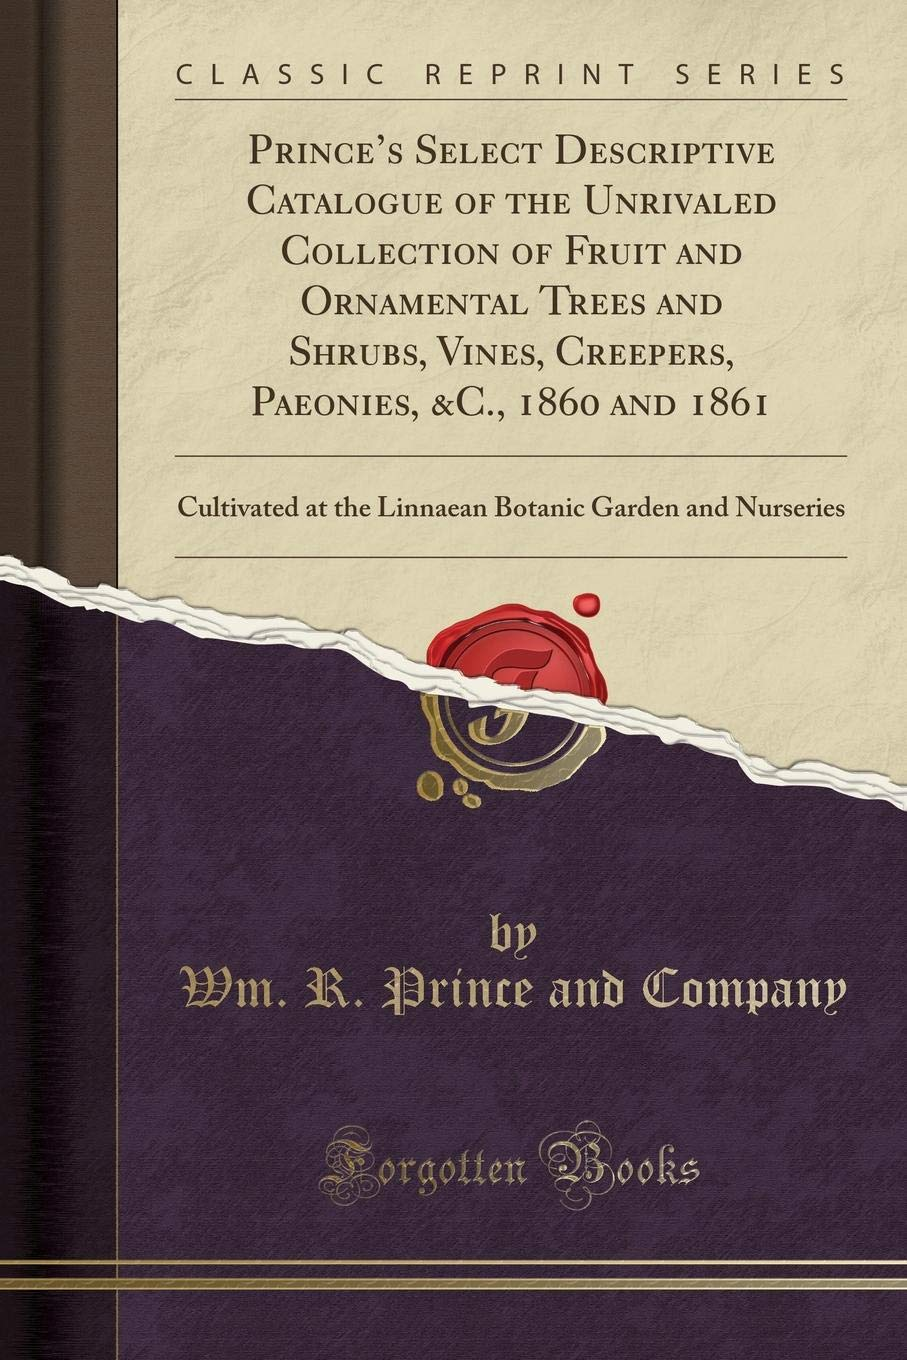 Download Prince's Select Descriptive Catalogue of the Unrivaled Collection of Fruit and Ornamental Trees and Shrubs, Vines, Creepers, Paeonies, &C., 1860 and ... Garden and Nurseries (Classic Reprint) pdf